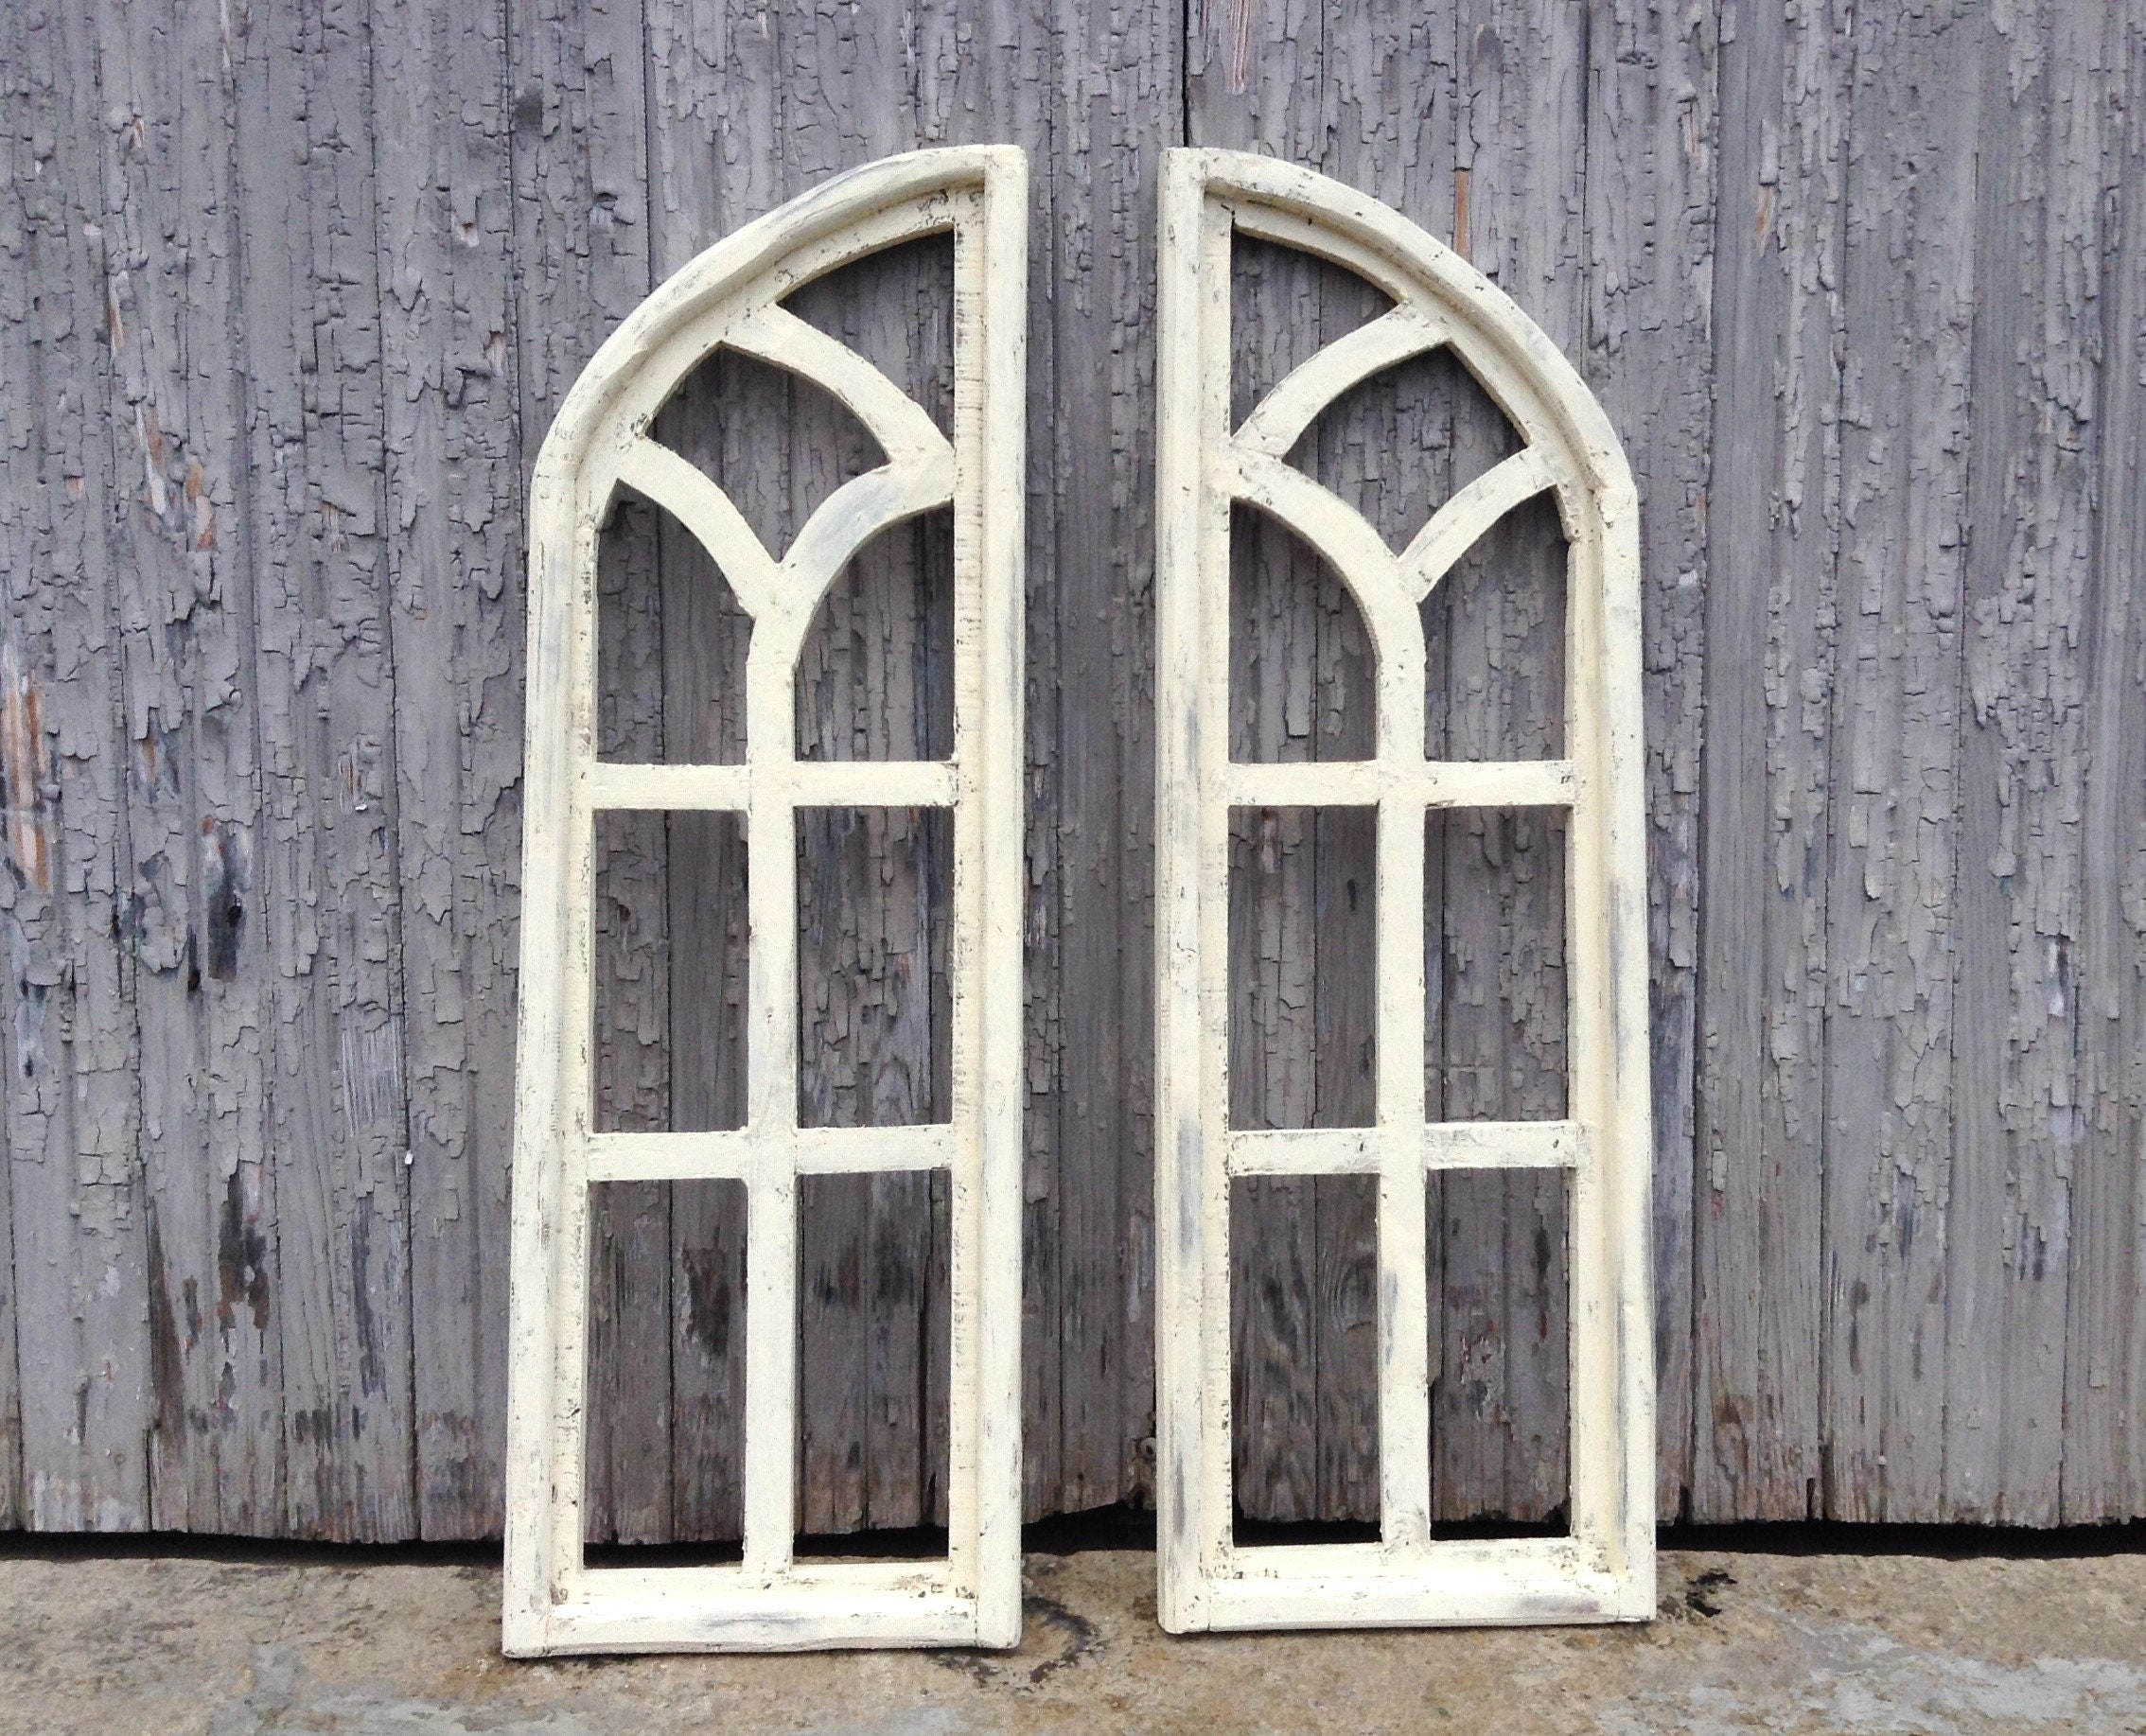 35 Arch Window 2 Piece Parchment White Wood Window Frame Wall Decor Wall Hanging Distressed Indoor Shutters Rustic French